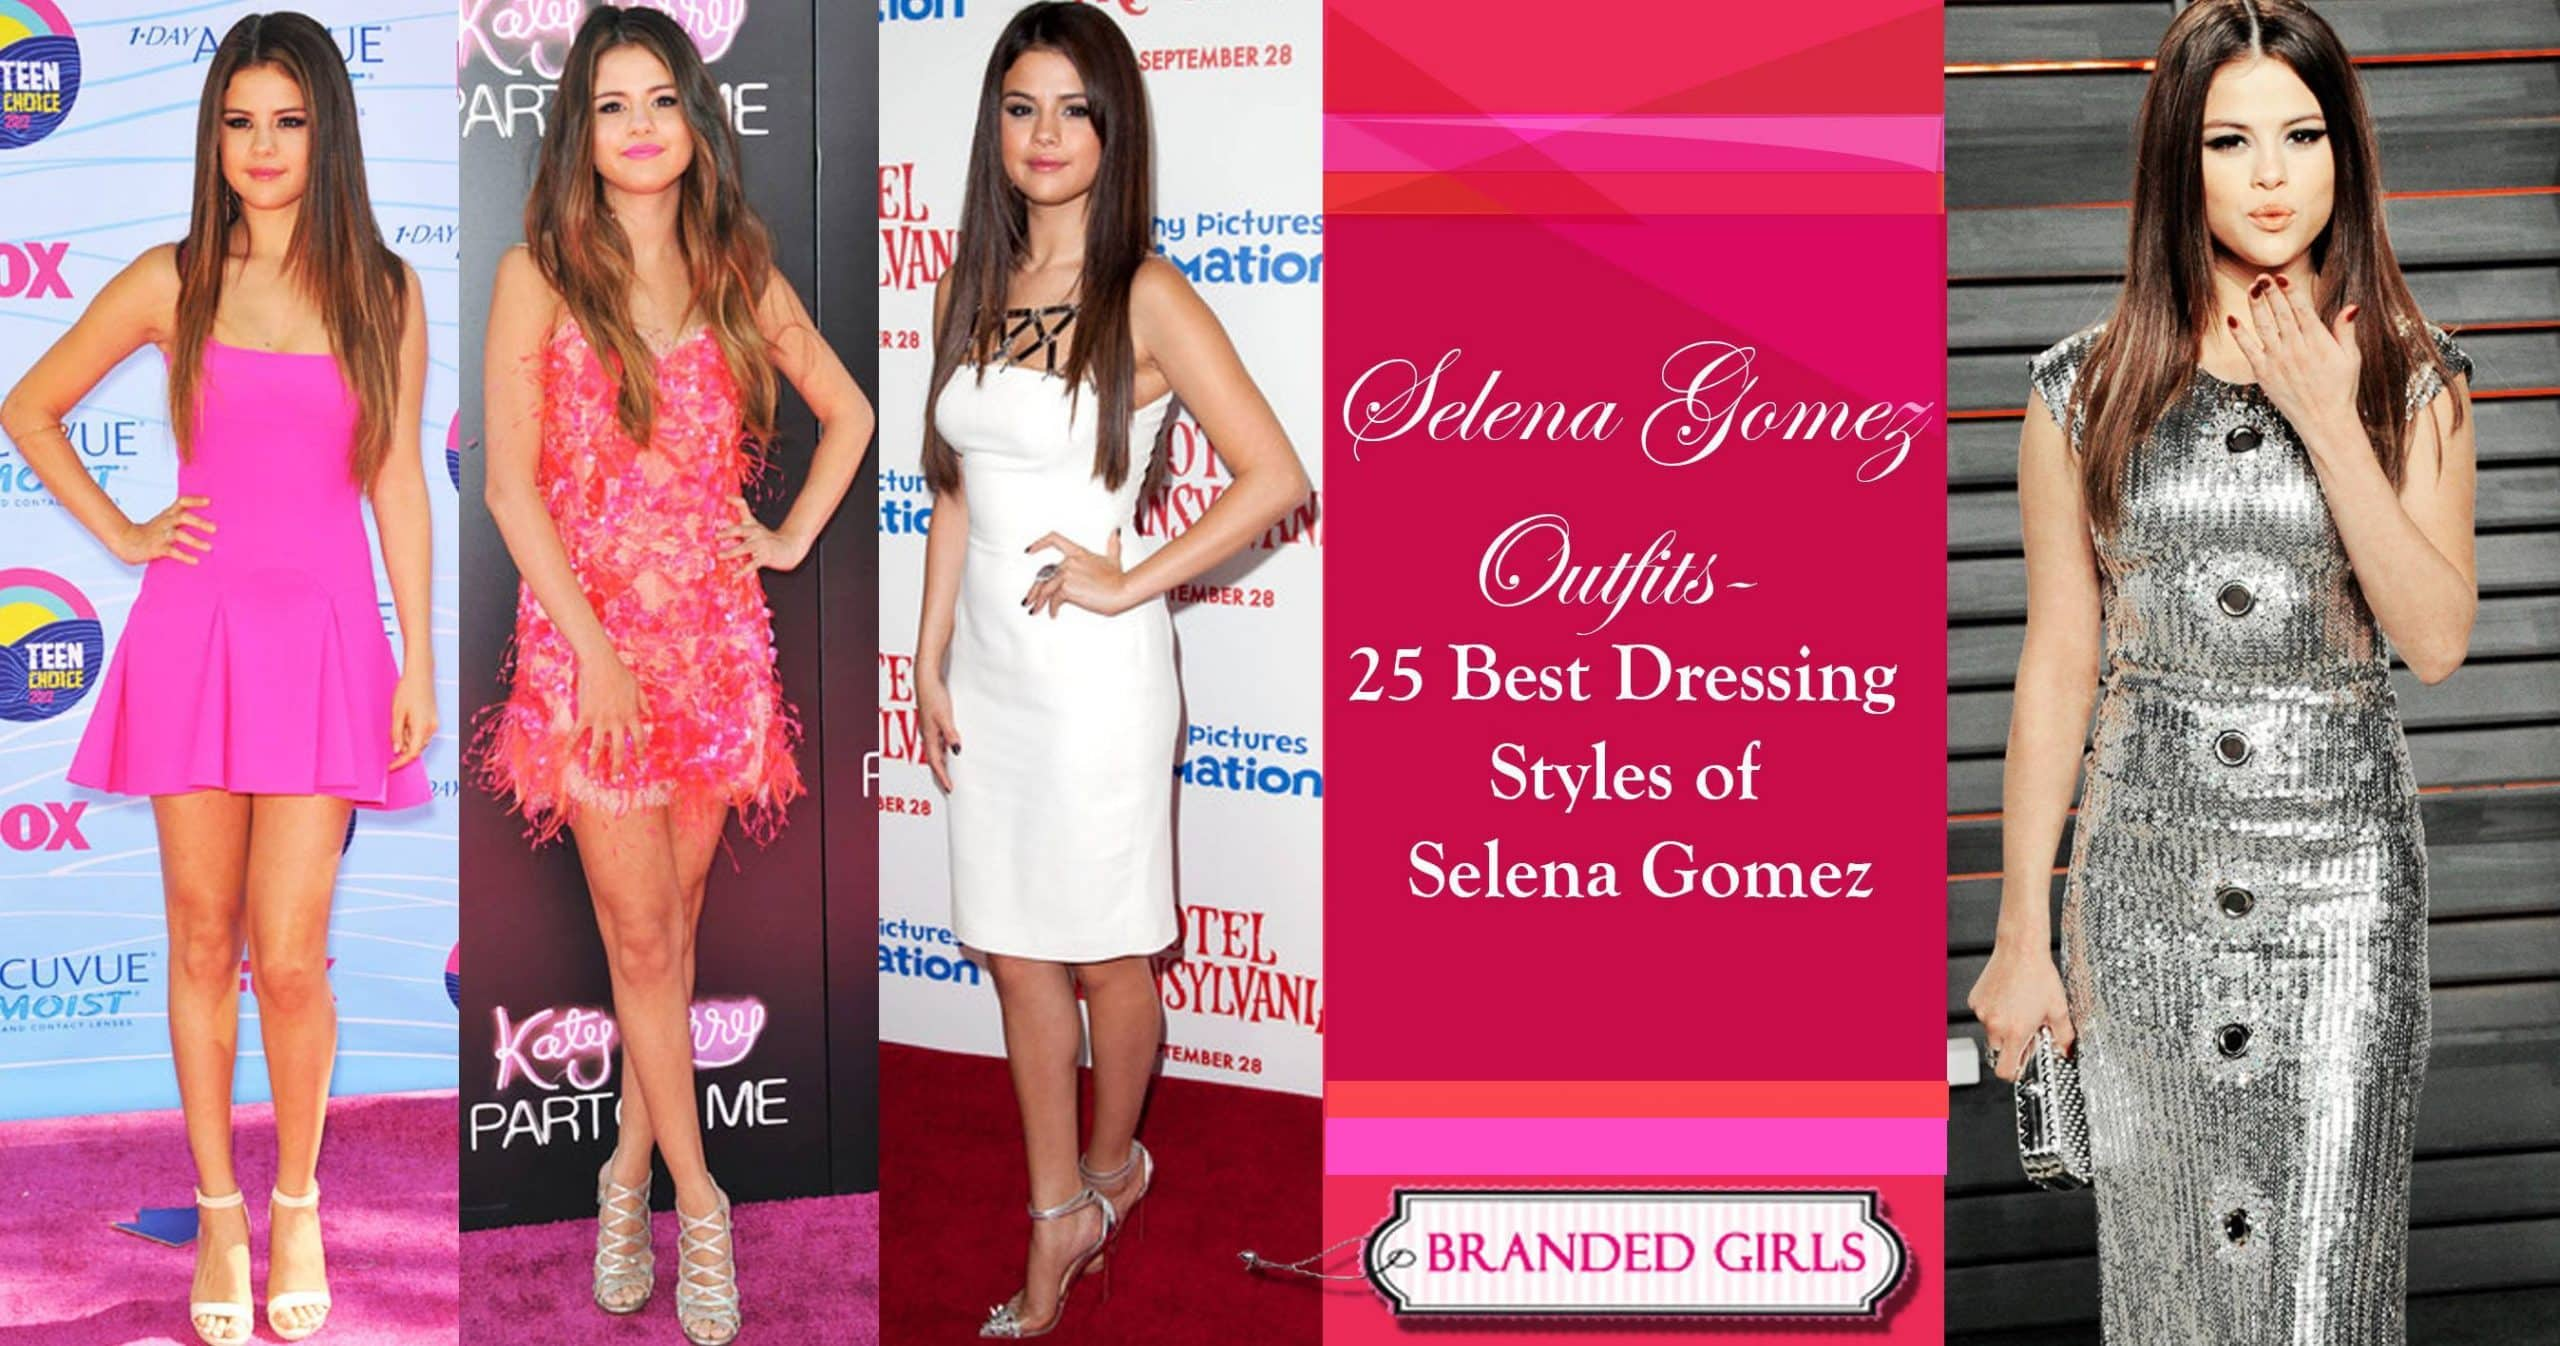 best-of-selena-gomez-outfits Selena Gomez Outfits-25 Best Dressing Styles of Selena to Copy